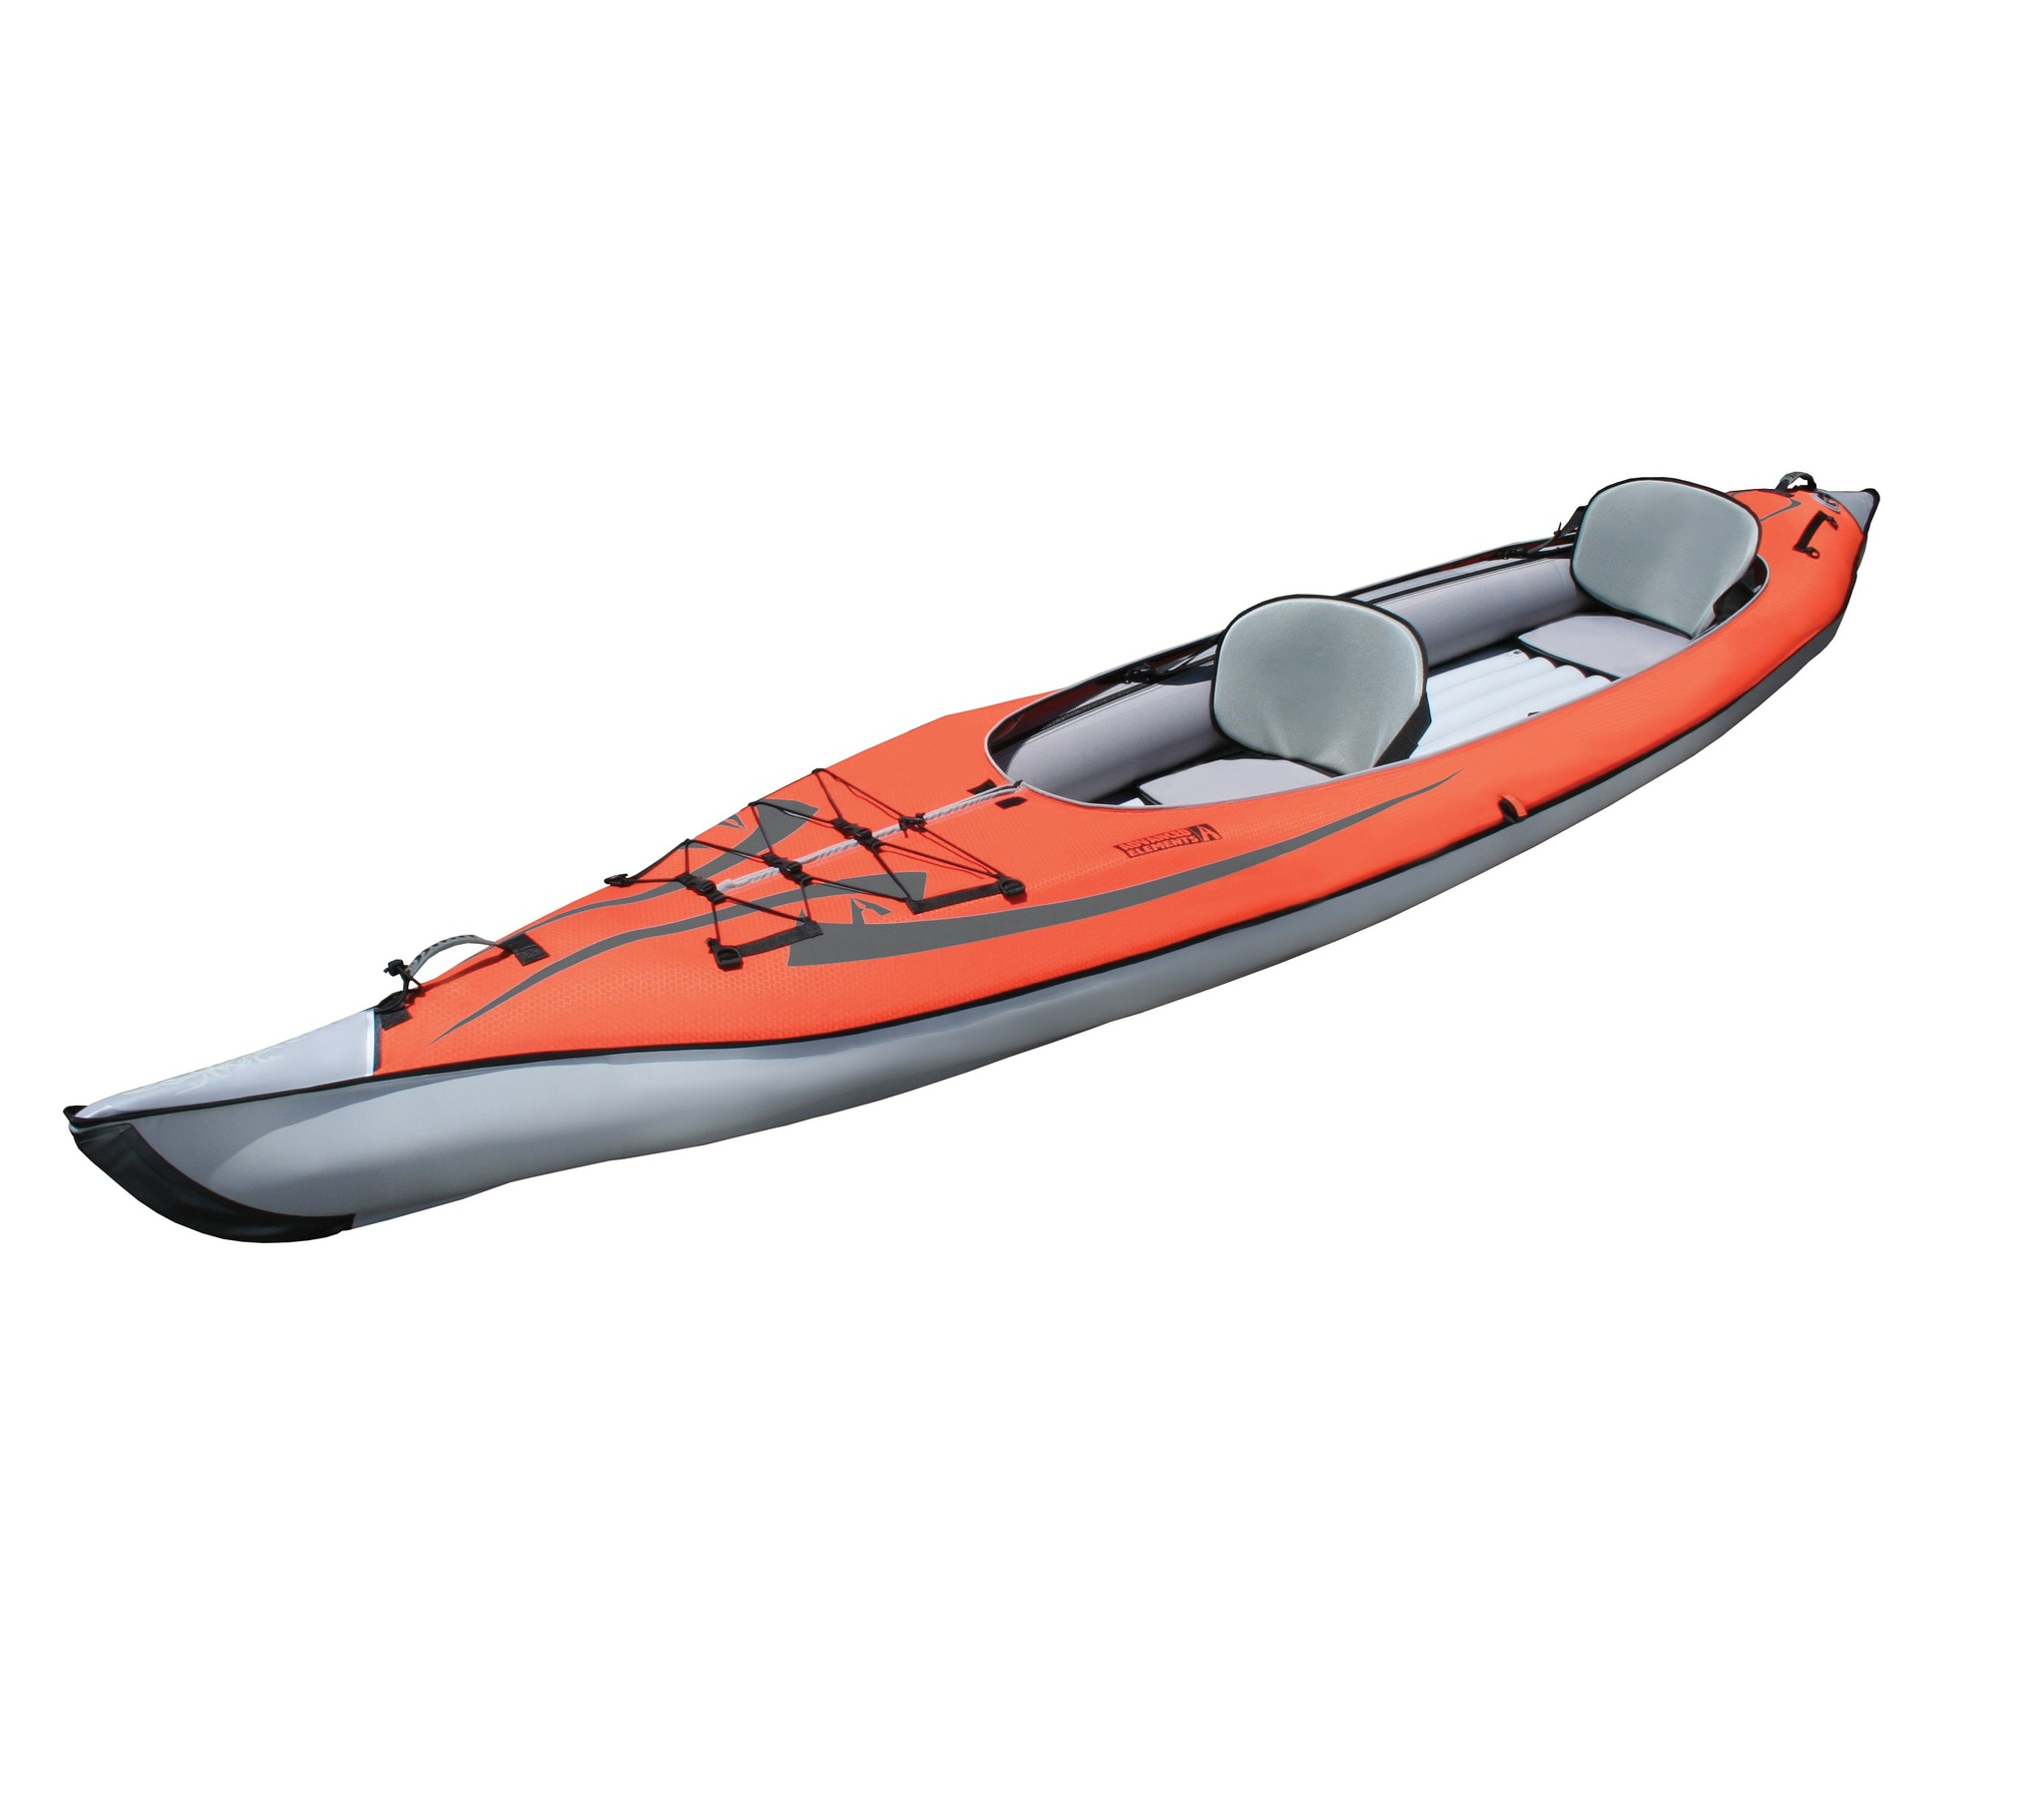 Expedition Touring Advancedframe® Convertible inflatable kayak